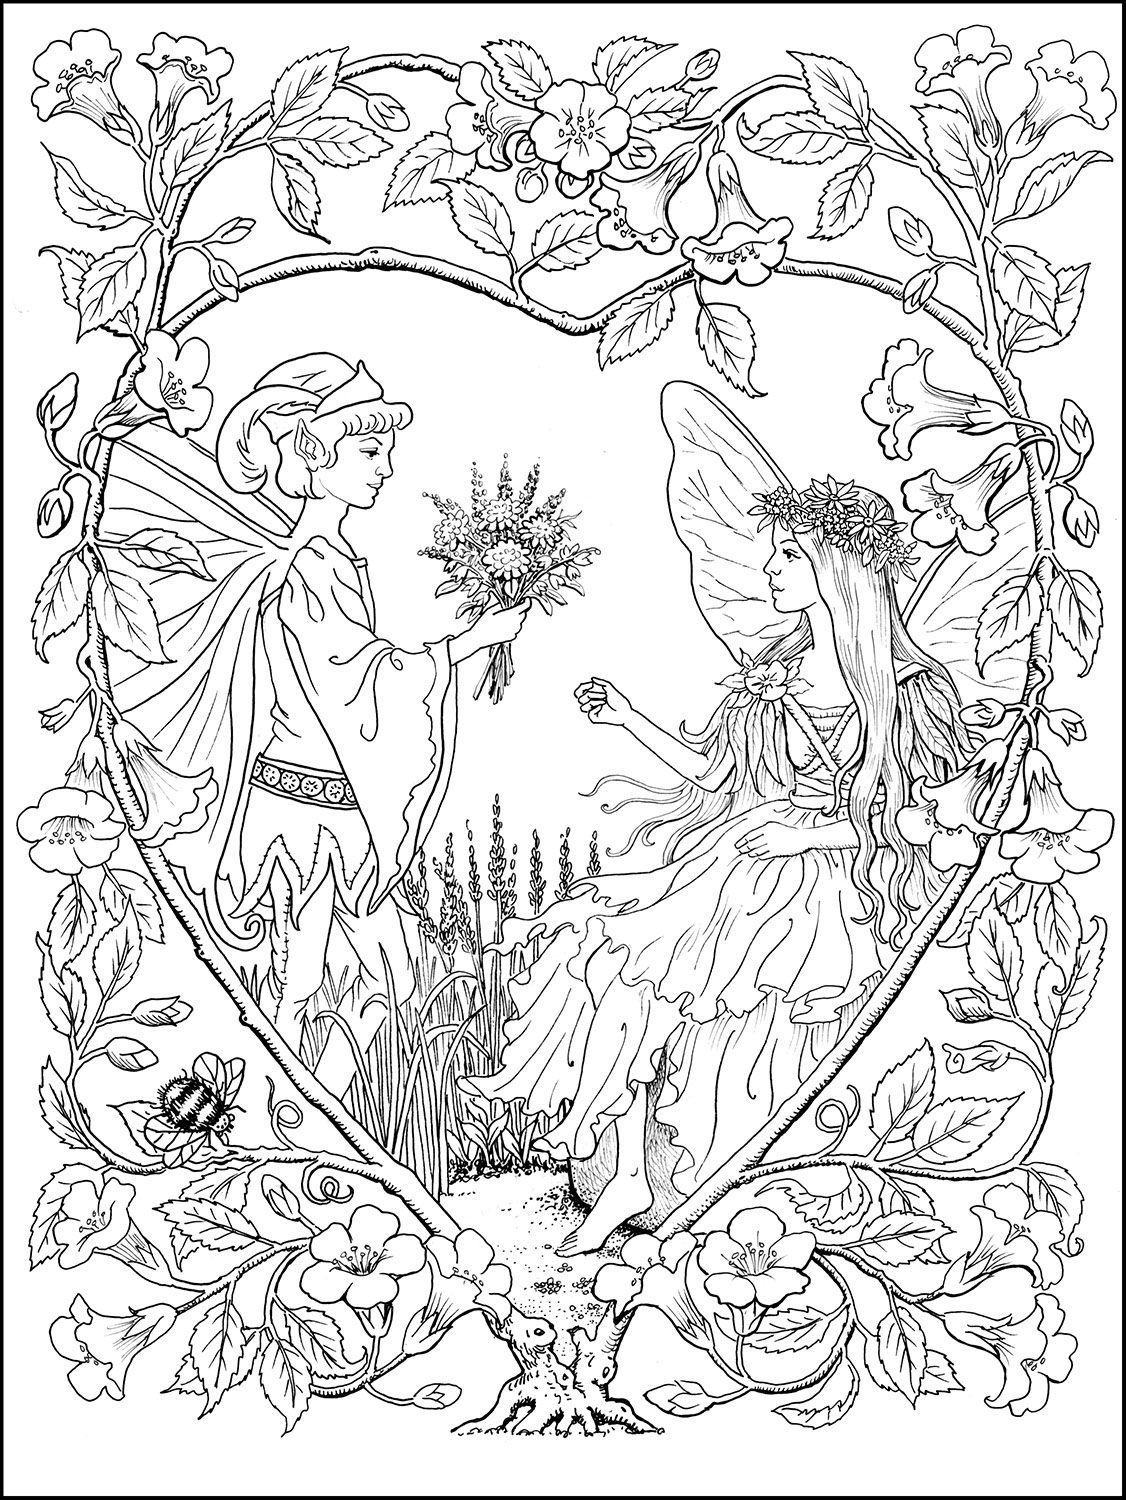 Coloring Book Samples Ruth Sanderson Fairy Coloring Pages Free Coloring Pages Coloring Pages